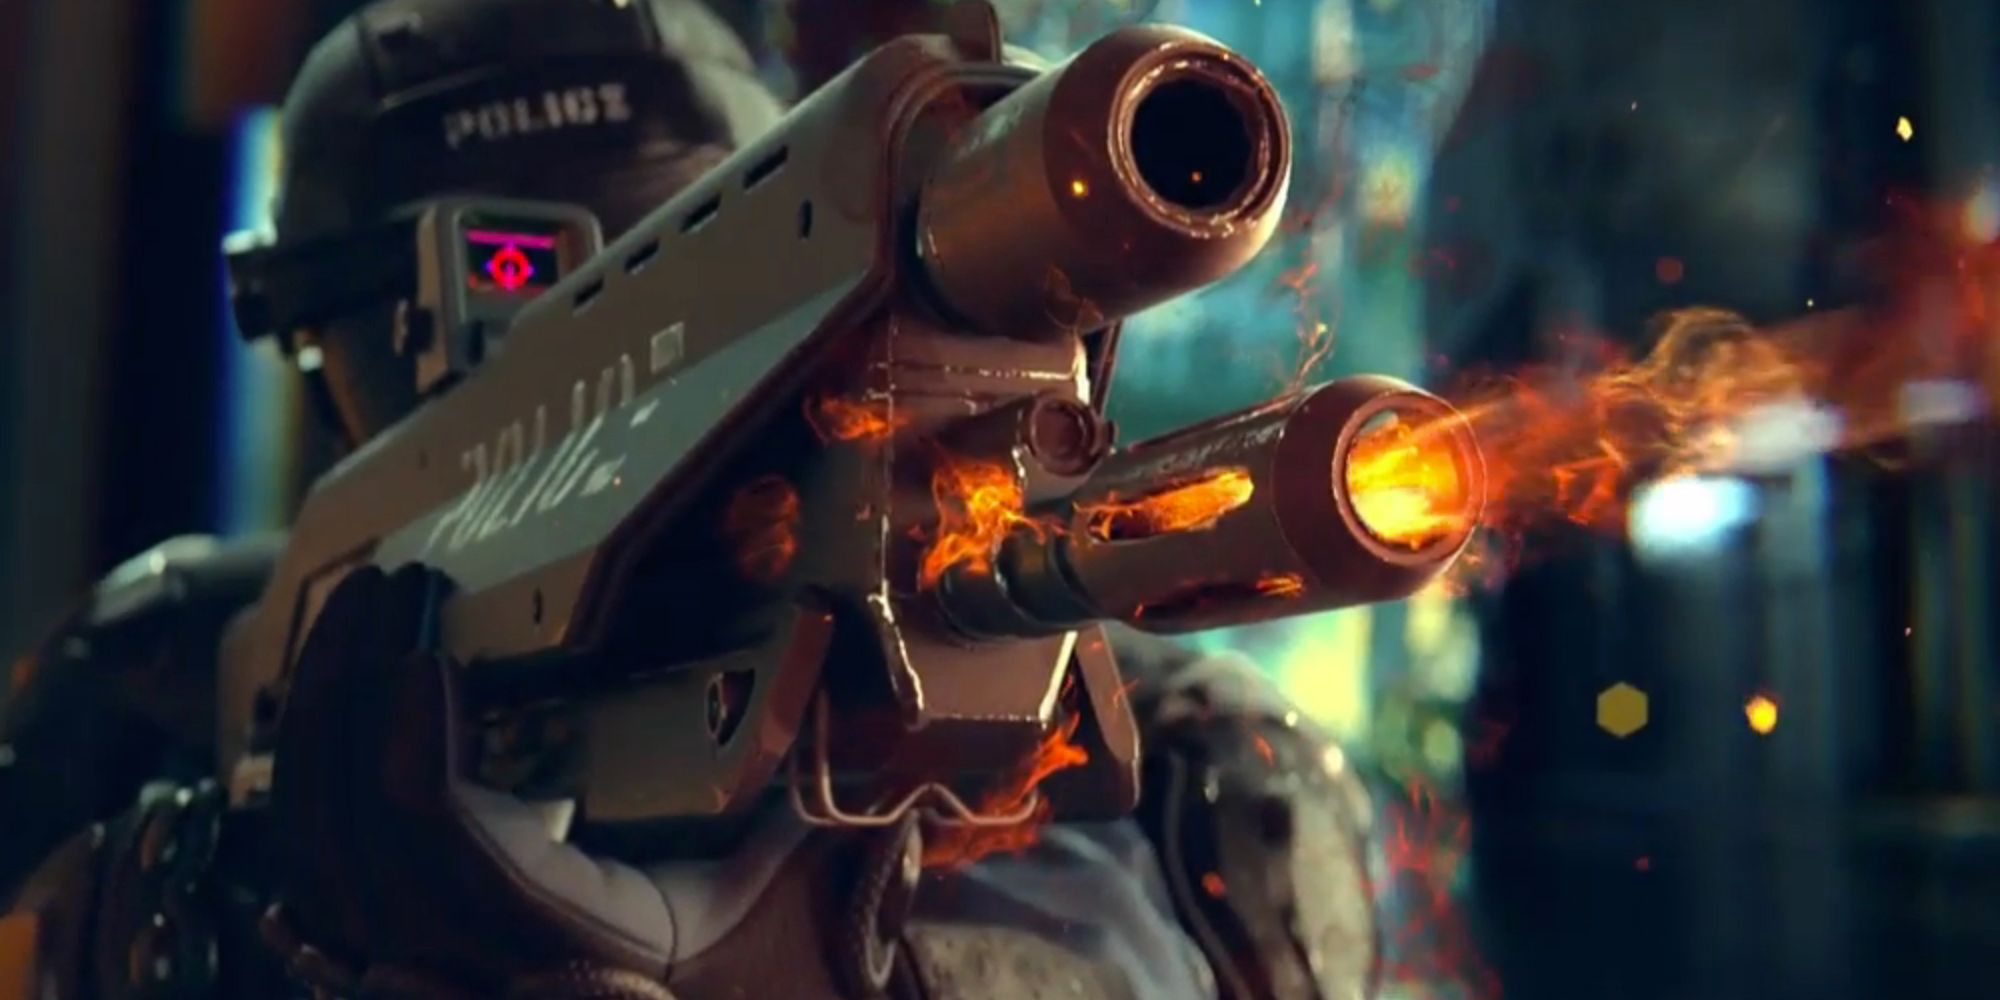 Keanu Reeves to star in Cyberpunk 2077, with release date ...